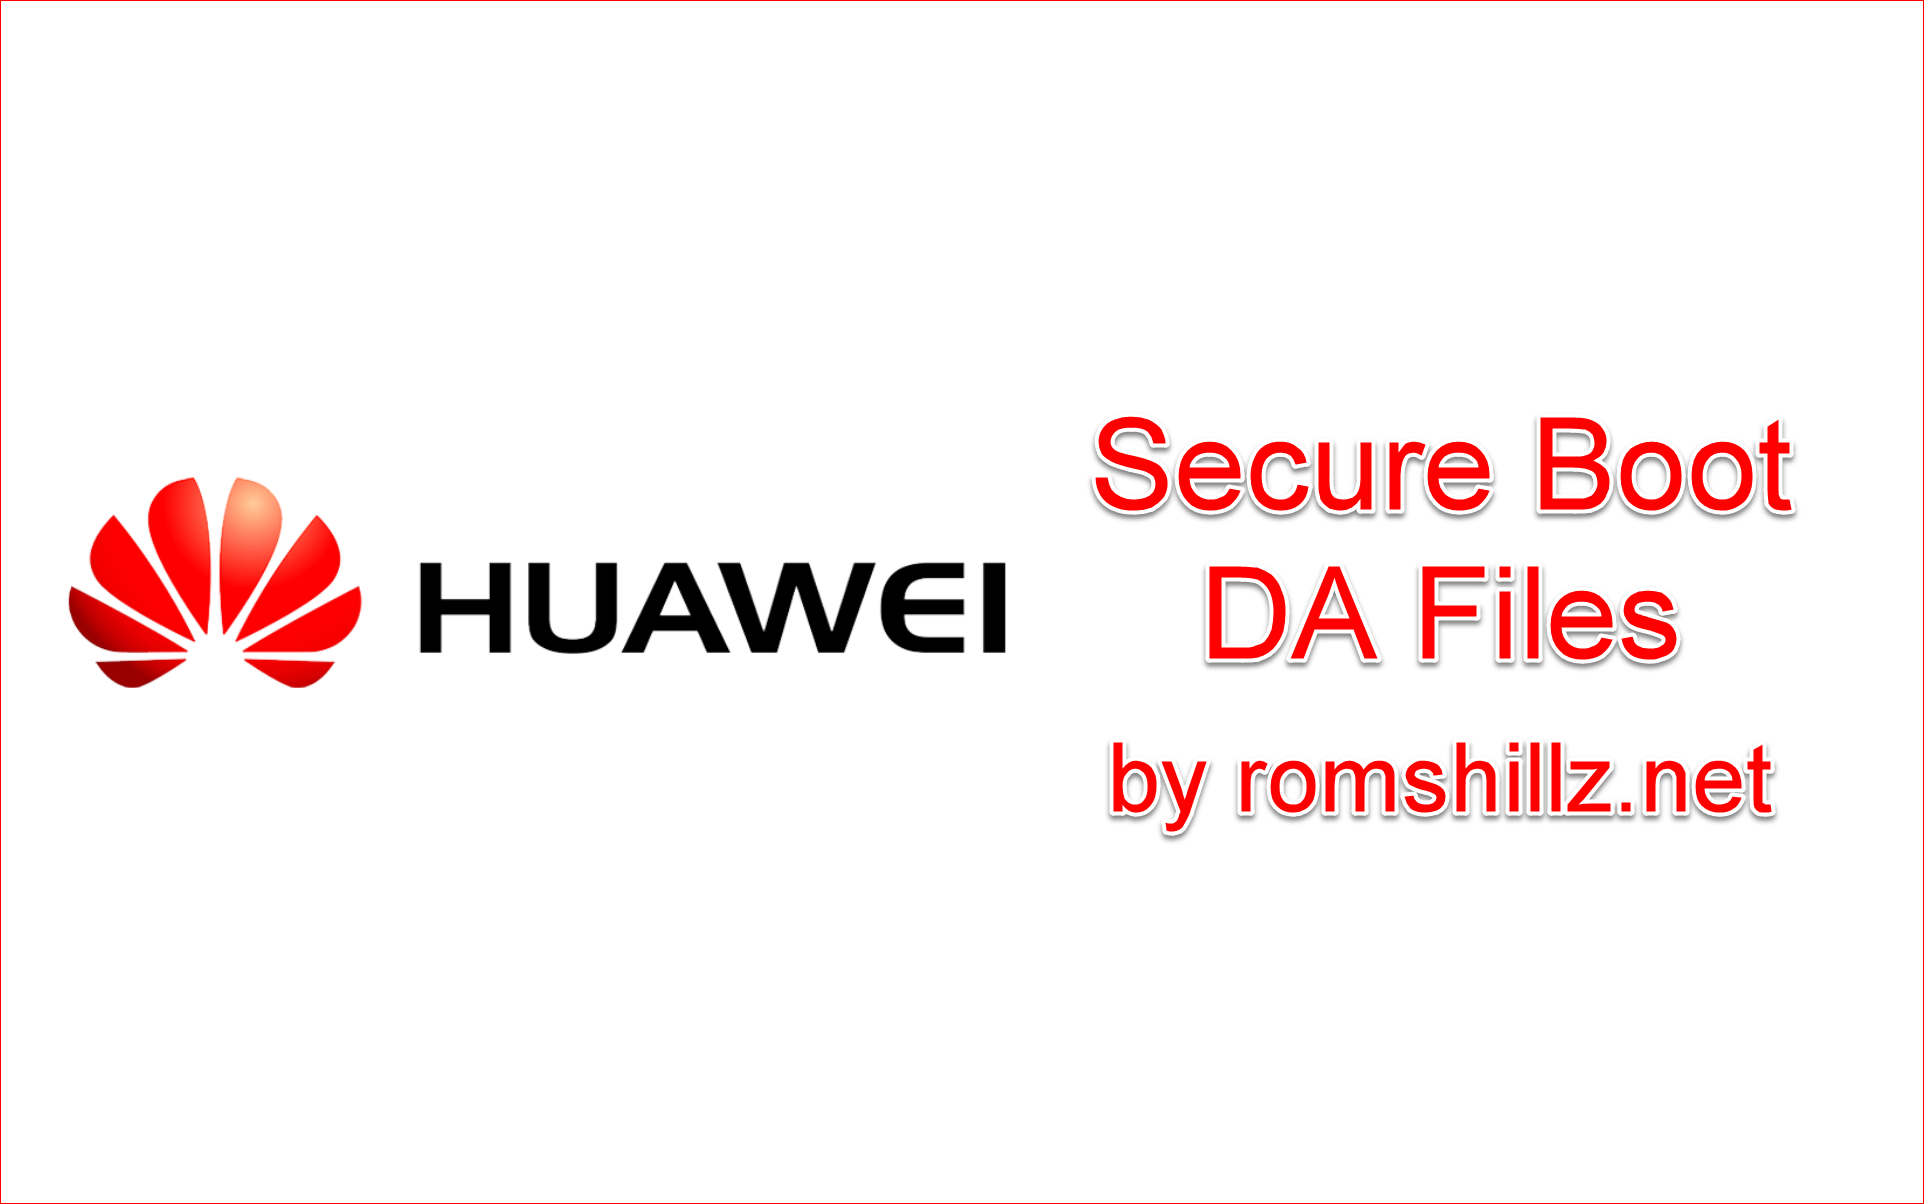 huawei-secure-boot.png